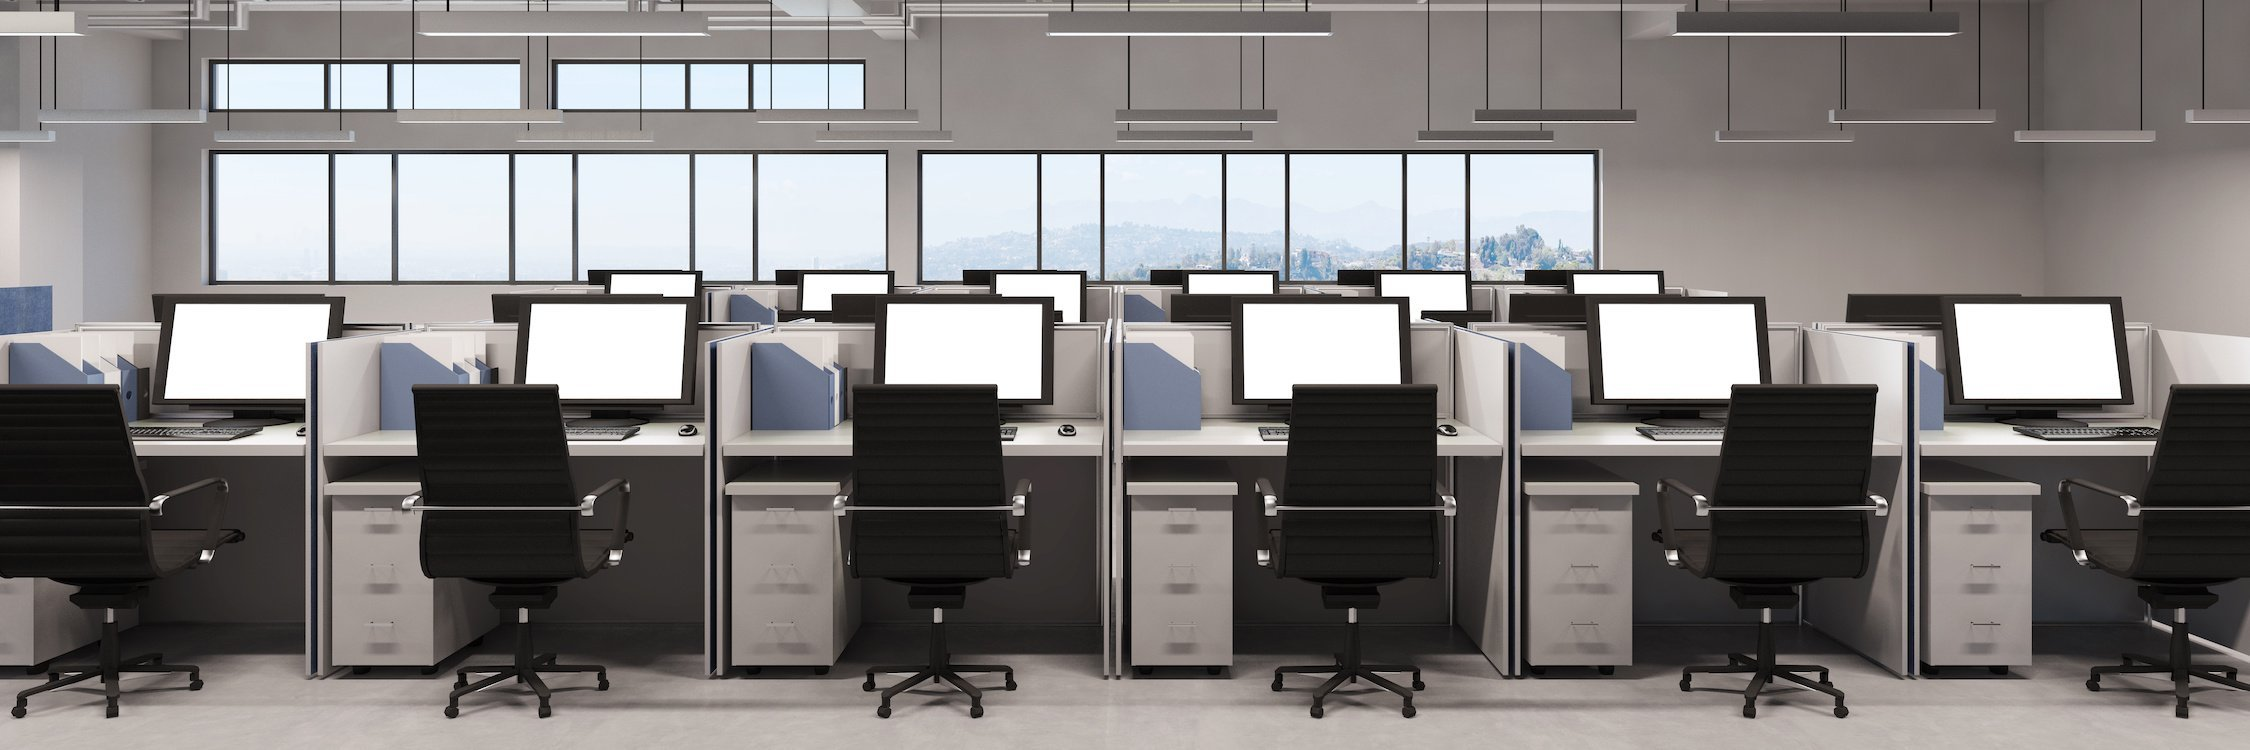 9 Ways to Improve Call Center Functionality on a UCaaS Platform